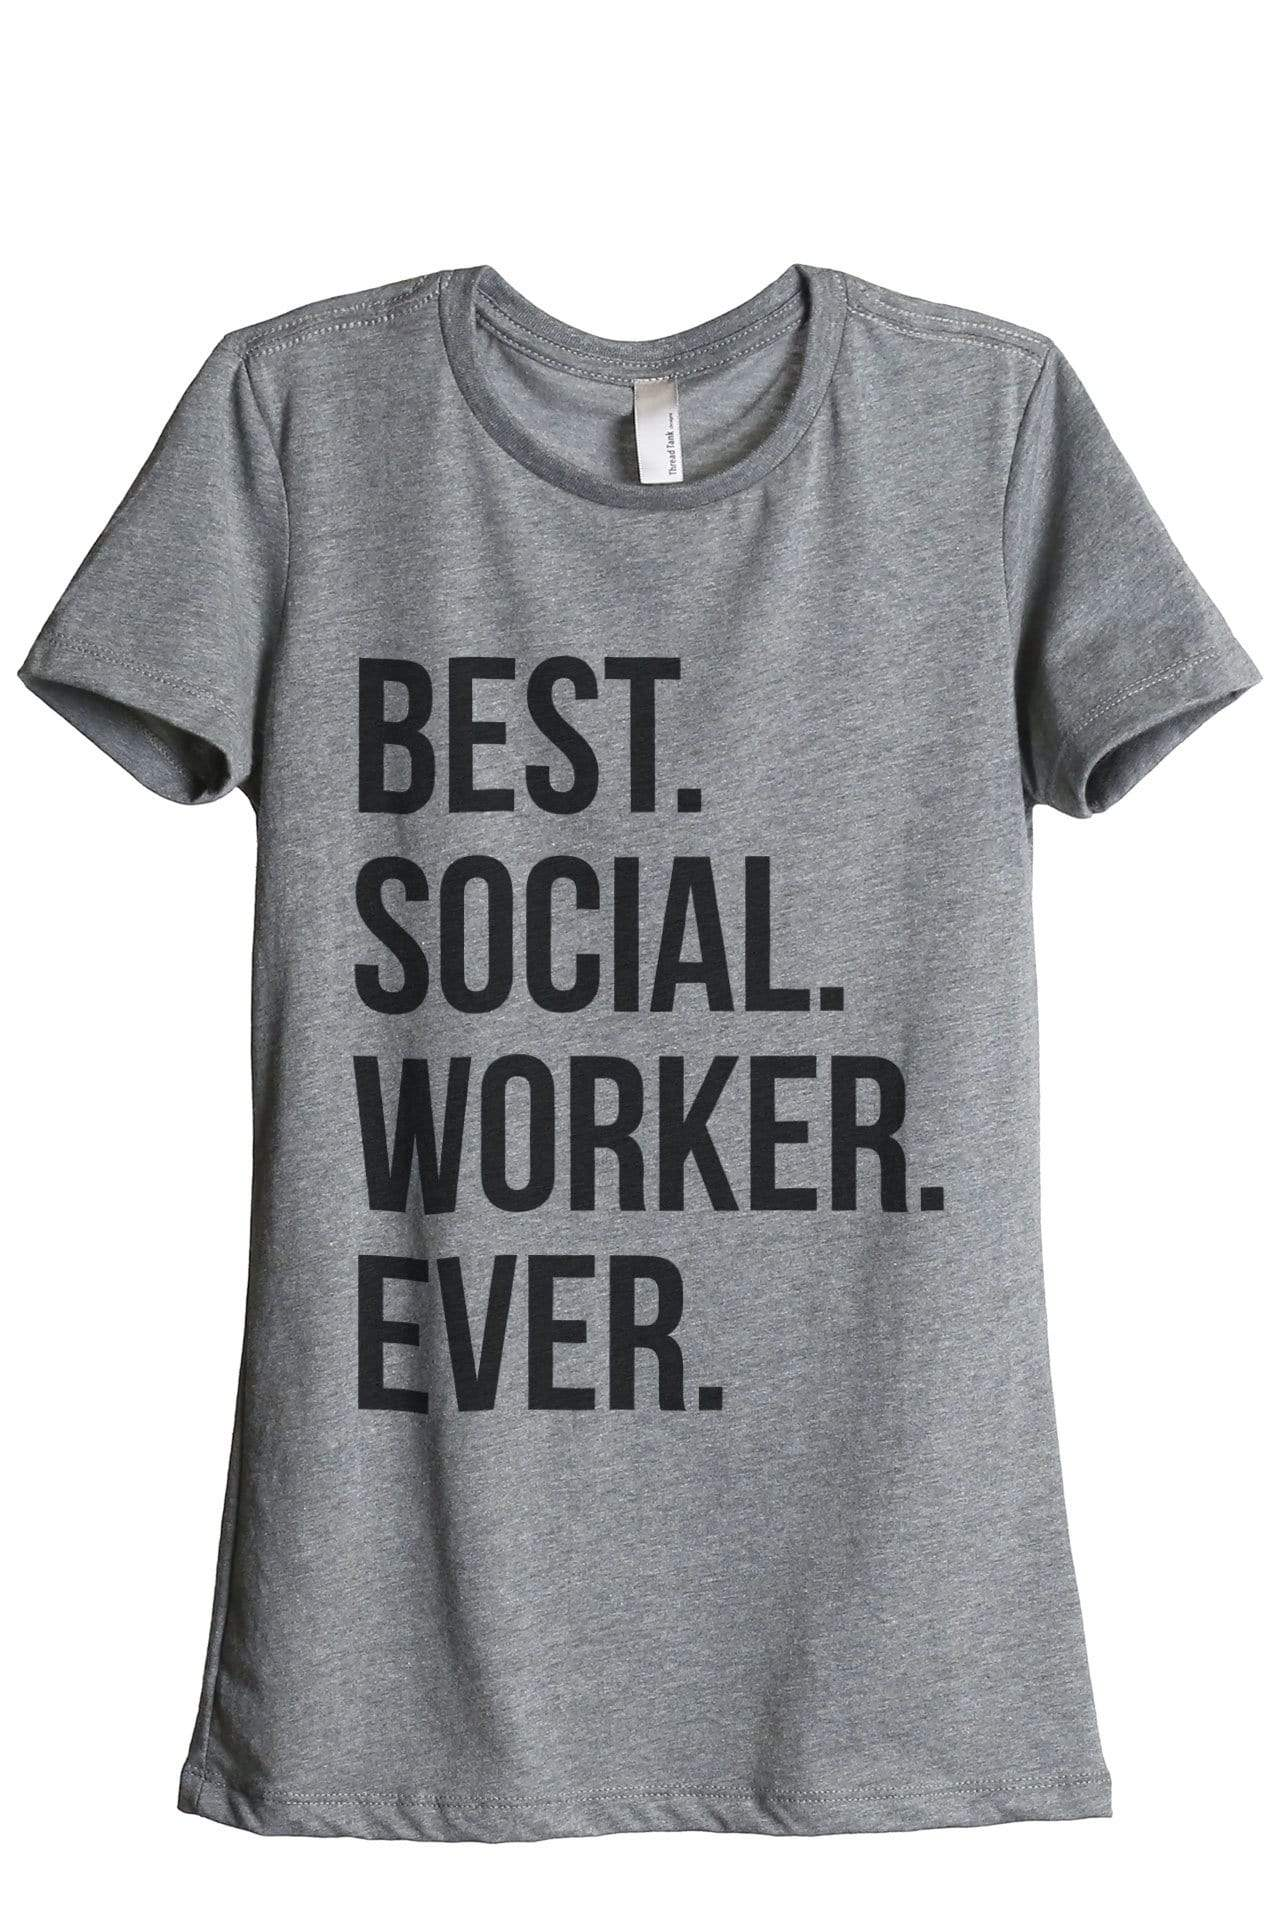 Best Social Worker Ever - Thread Tank | Stories You Can Wear | T-Shirts, Tank Tops and Sweatshirts